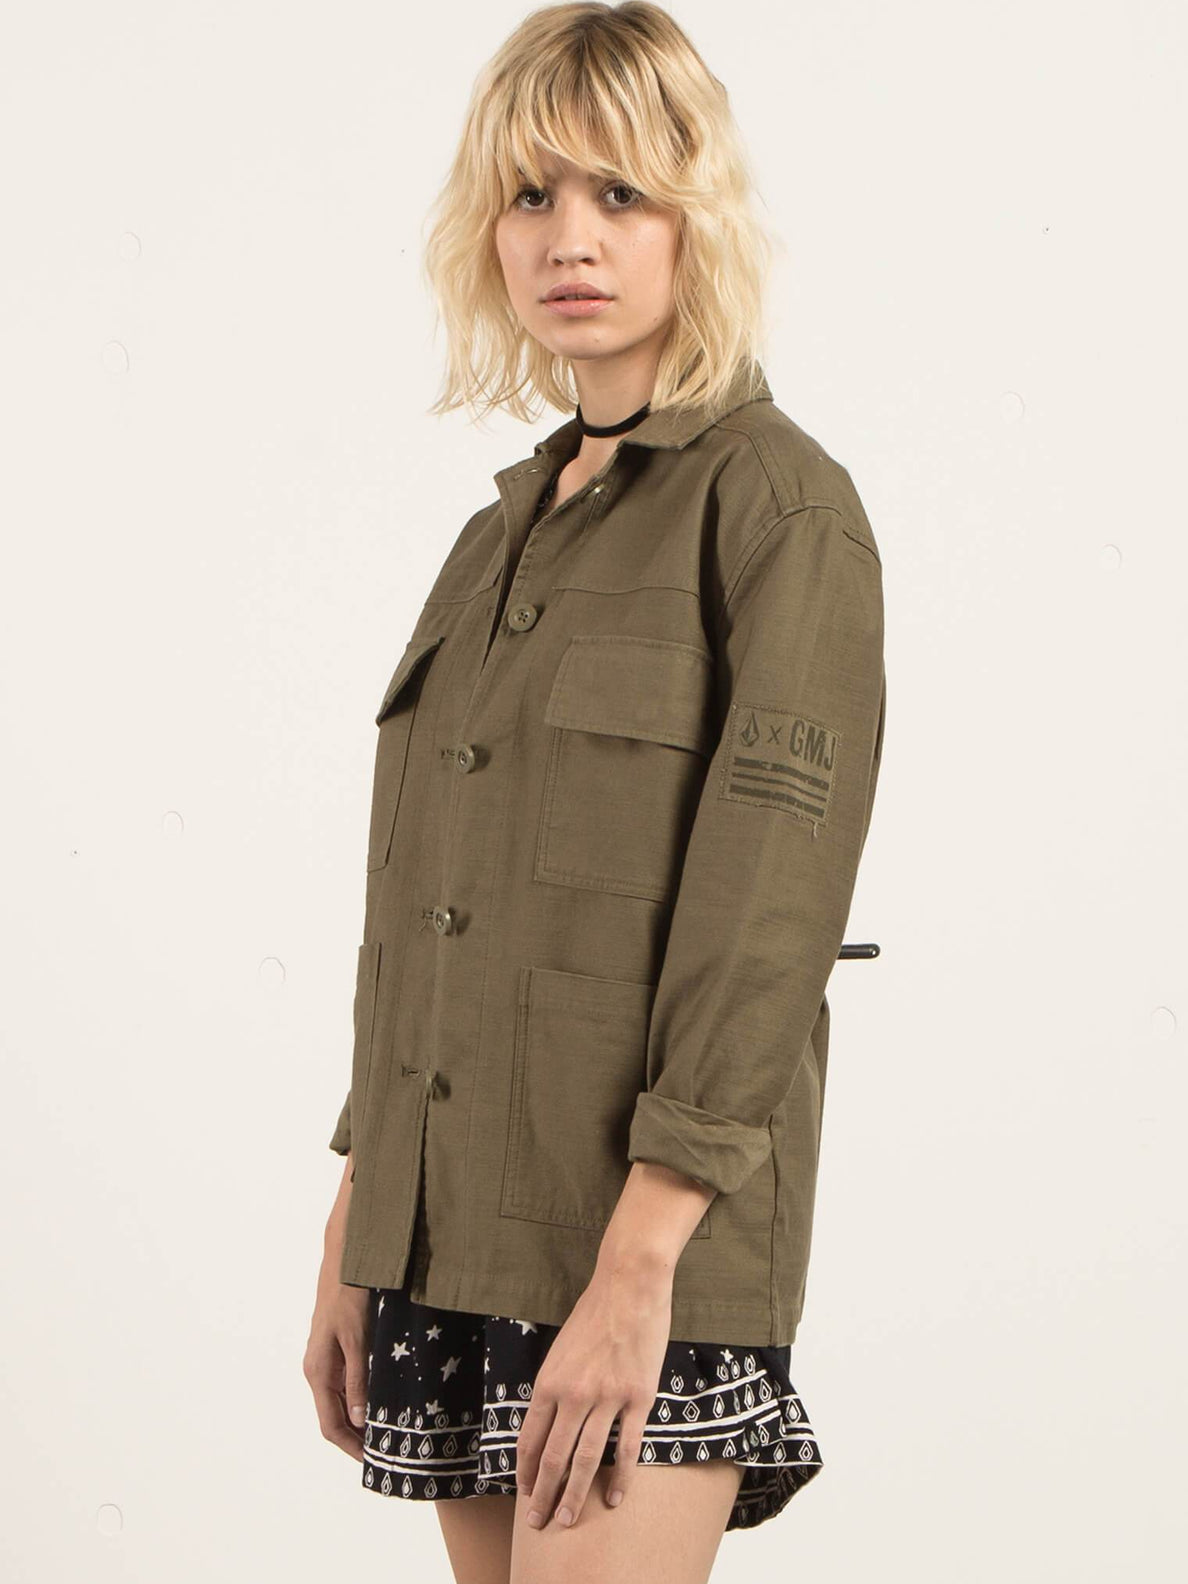 GMJ Shirt Jacket - Dark Camo